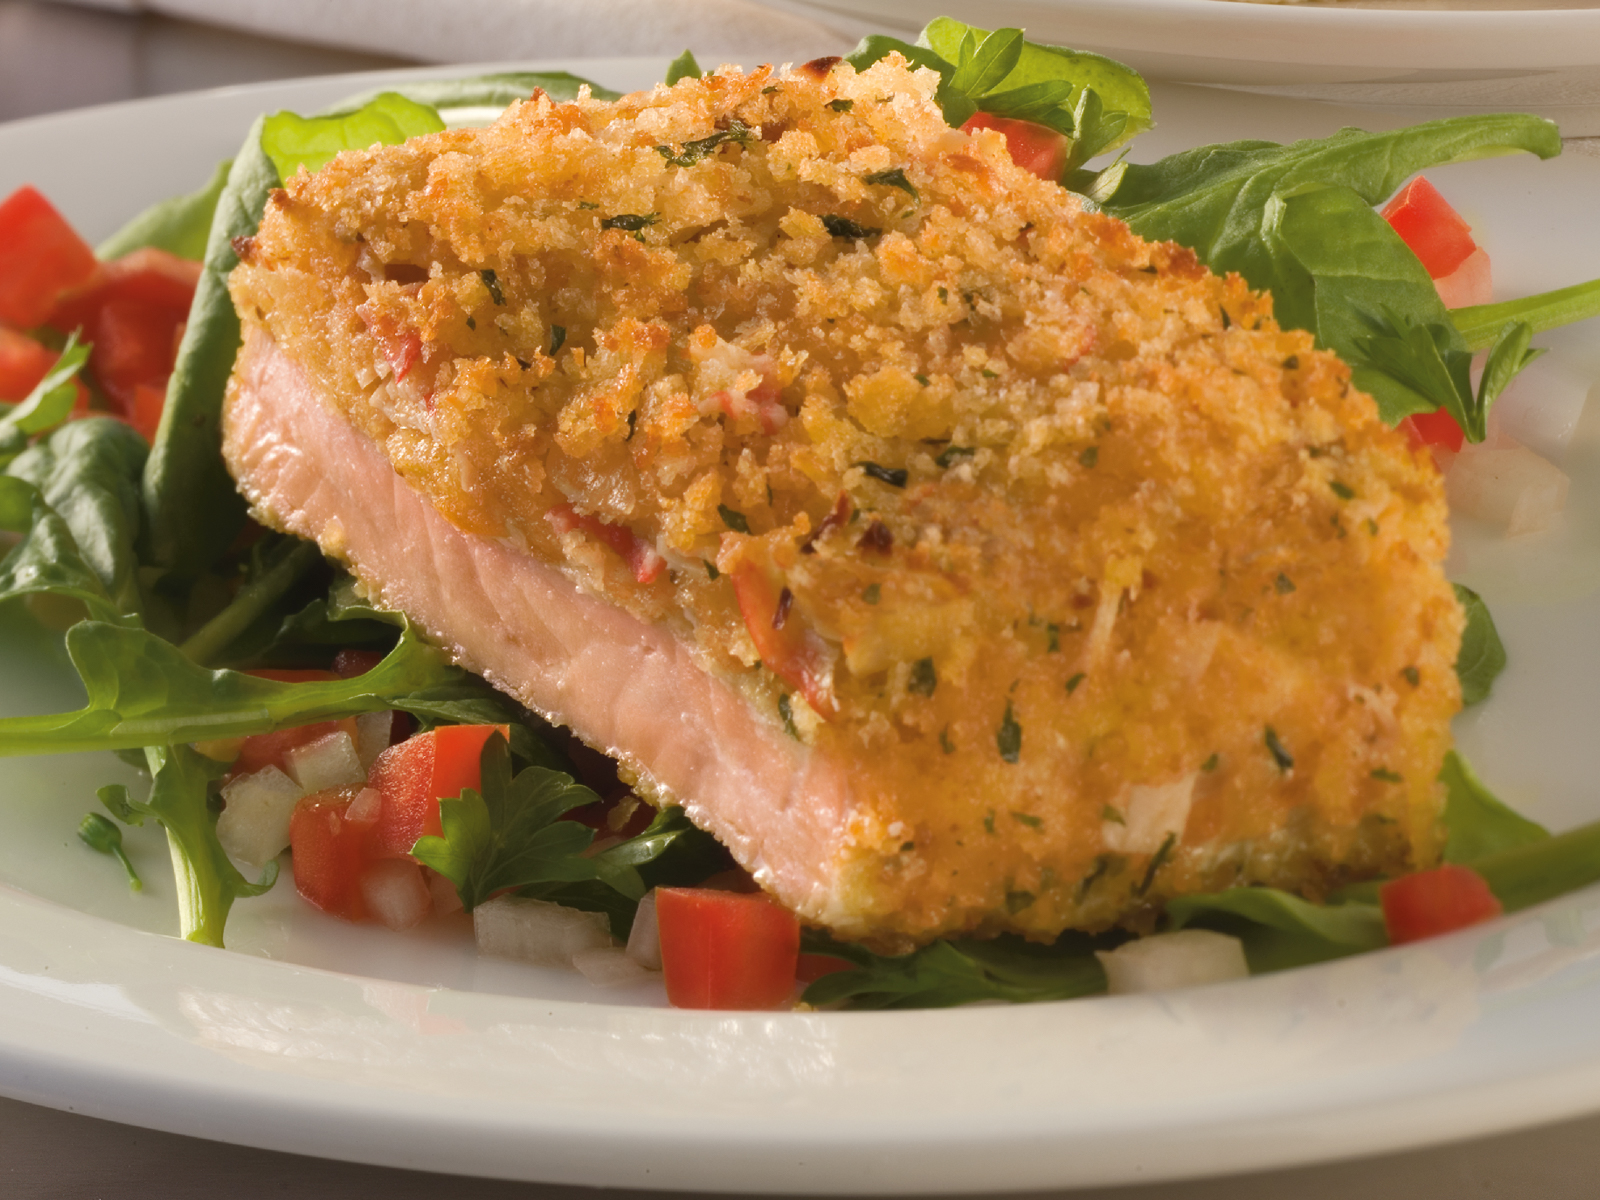 Crab Stuffed Alaskan Salmon Buffet Fillet Portions 4.4oz (1/10 lb) 472887